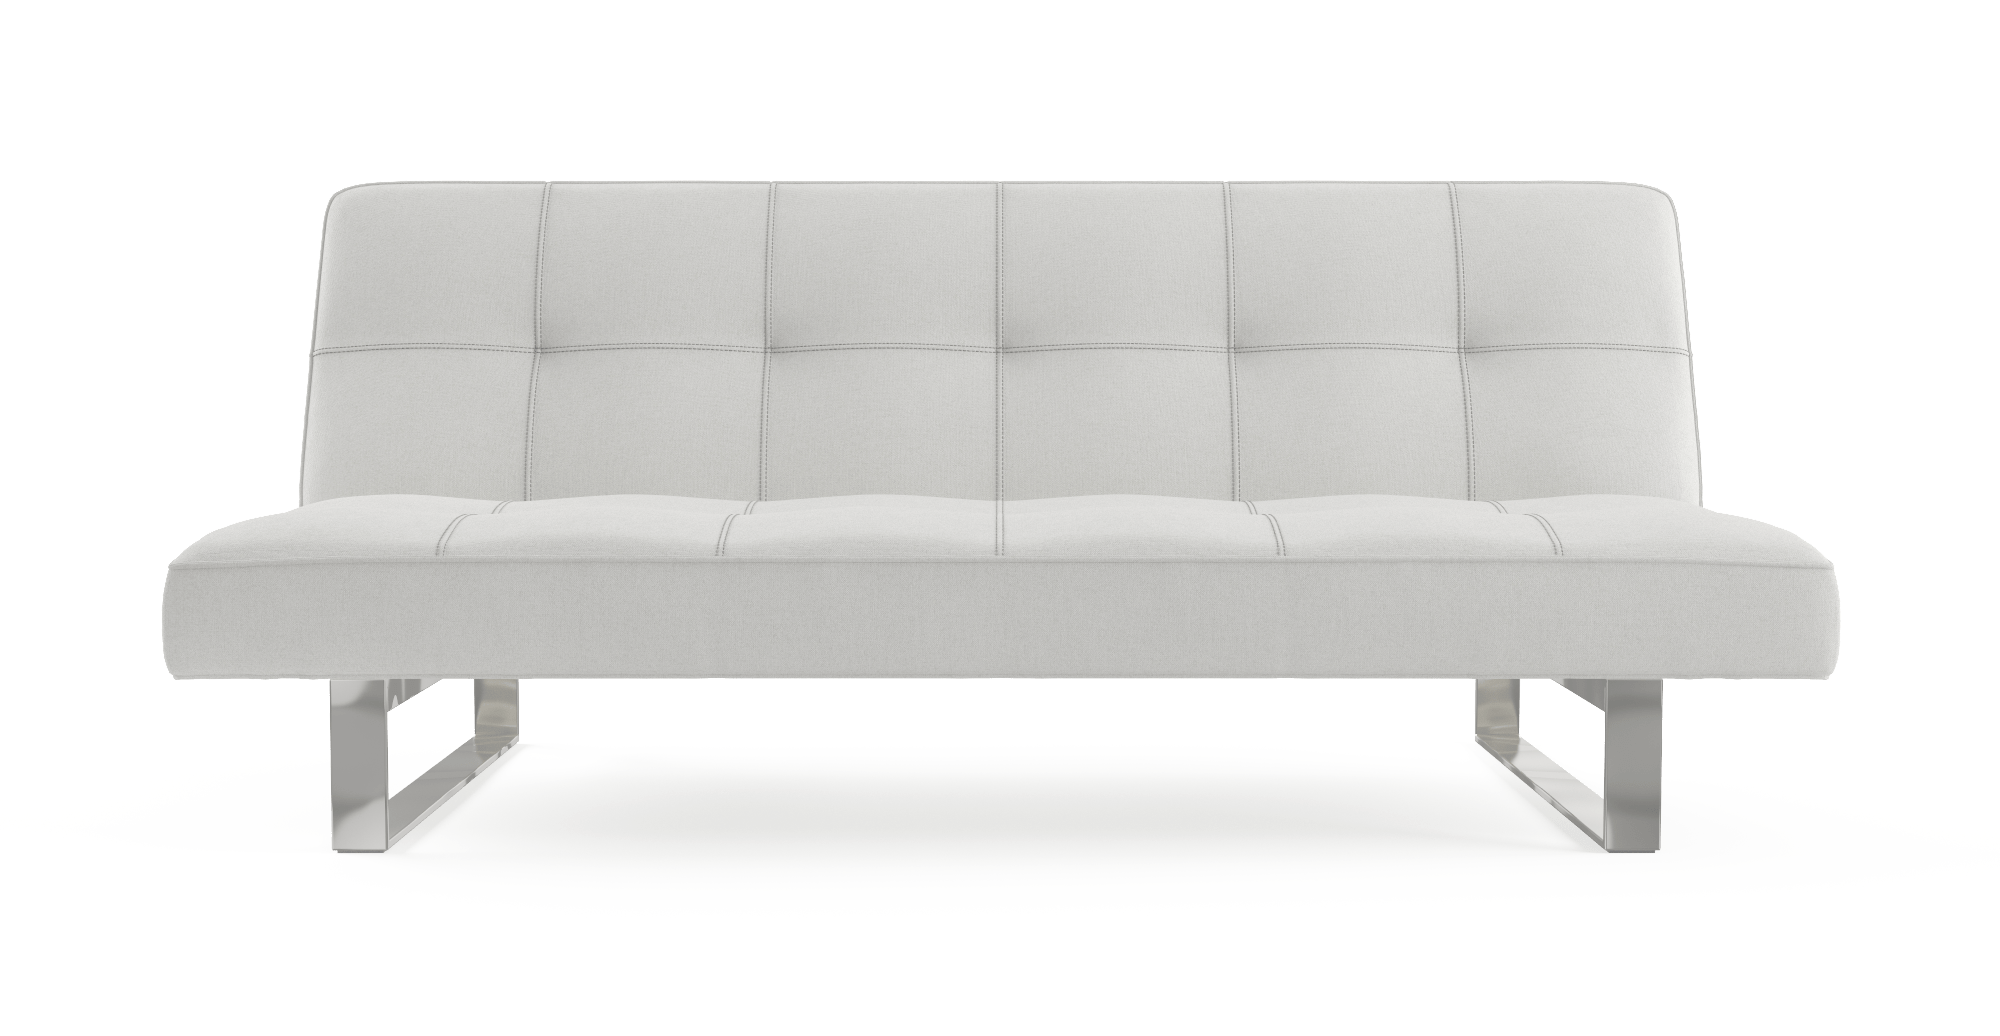 Freedom Furniture Couches Freedom Doze Sofa Bed Review Brokeasshome